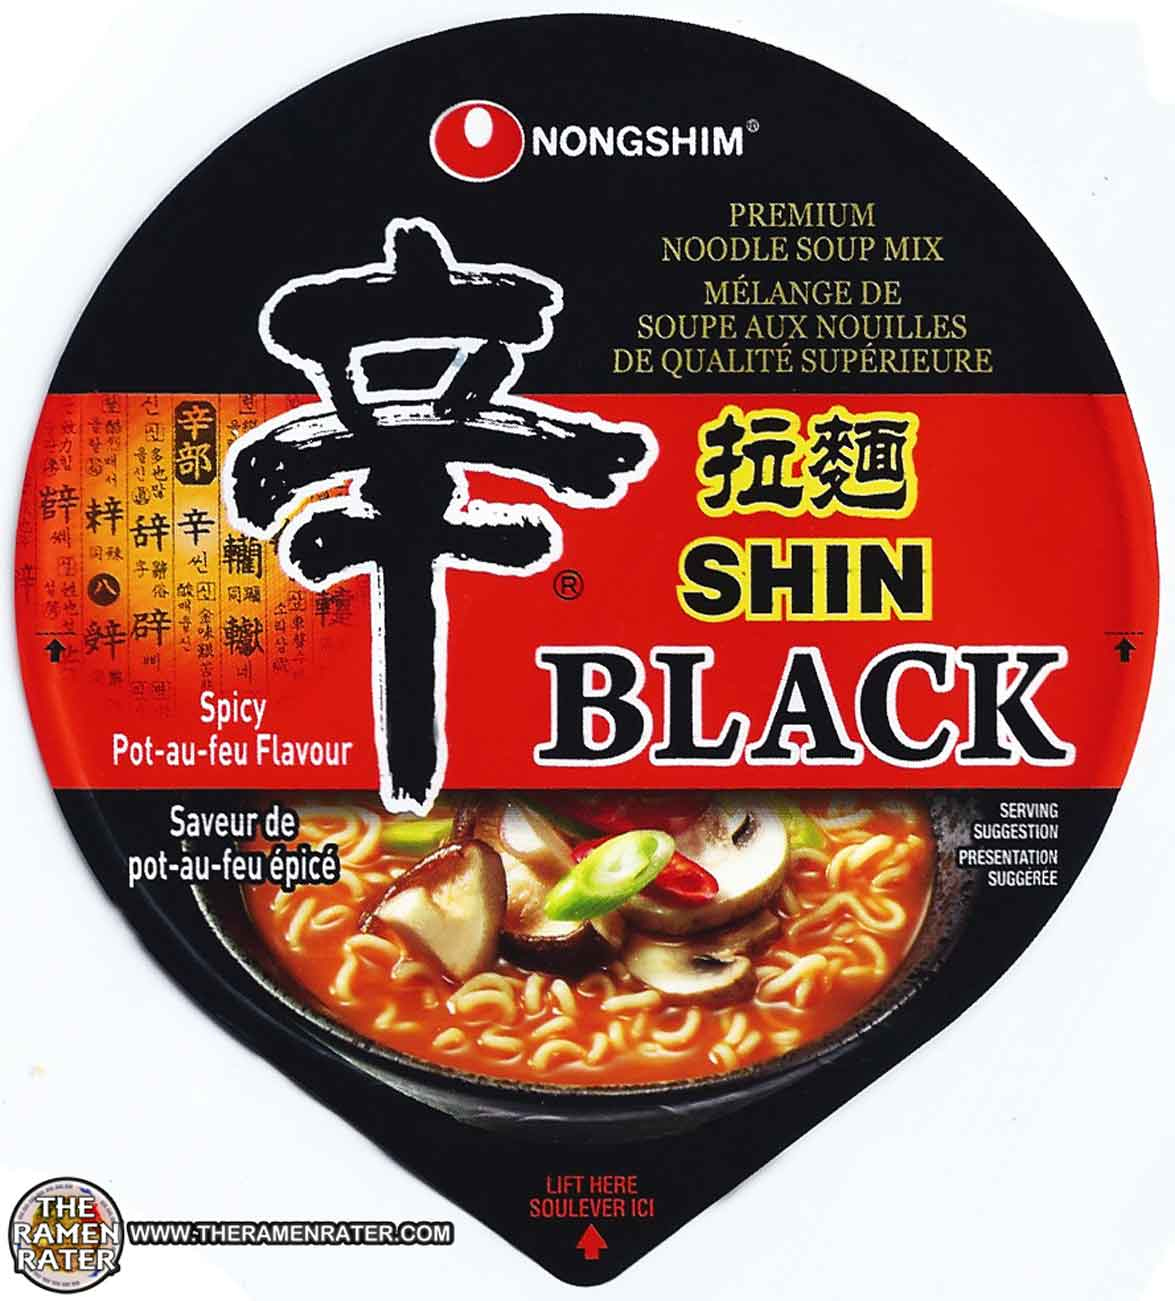 Bbq Blog in addition Cortes De Carne moreover 1178 Nongshim Shin Black Spicy Pot Au Feu Flavor Premium Noodle Soup moreover Chicken further Top Side Of Beef 3 4 People. on brisket cold cuts